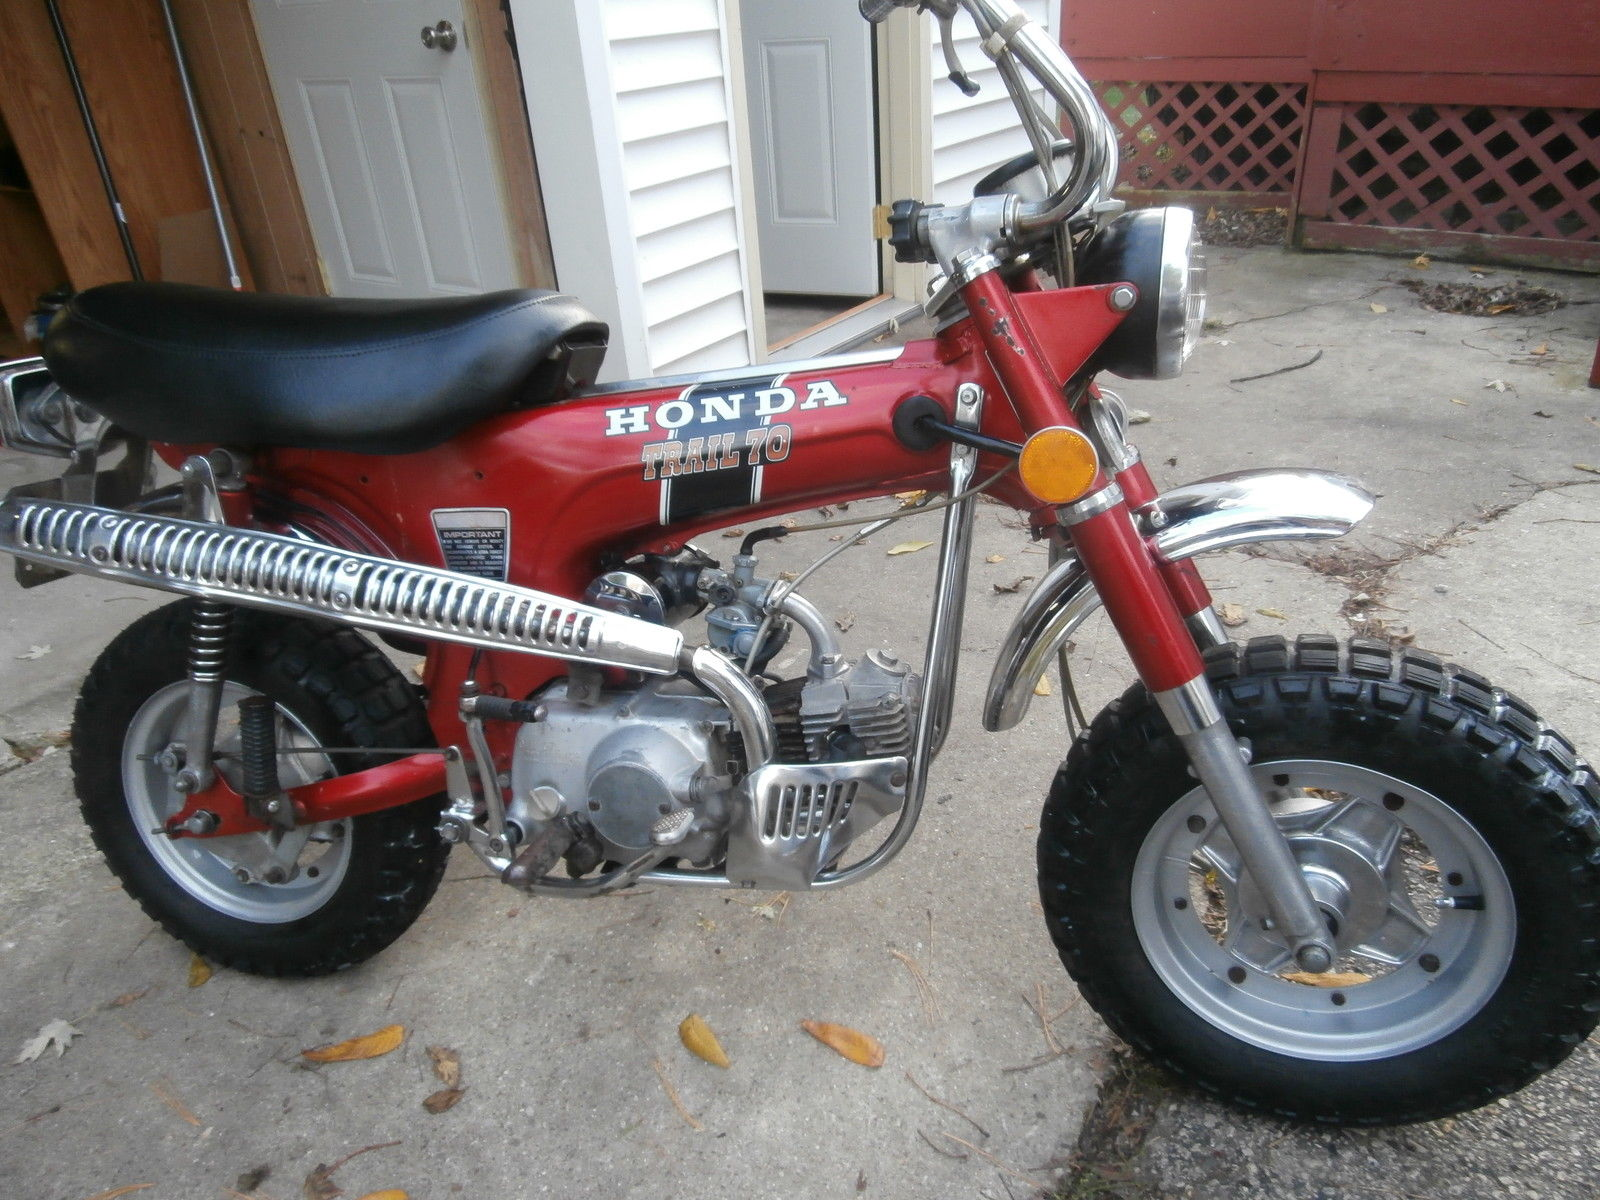 Honda 4 speed ct 70 1971 original nice 4 speed for Honda in ct